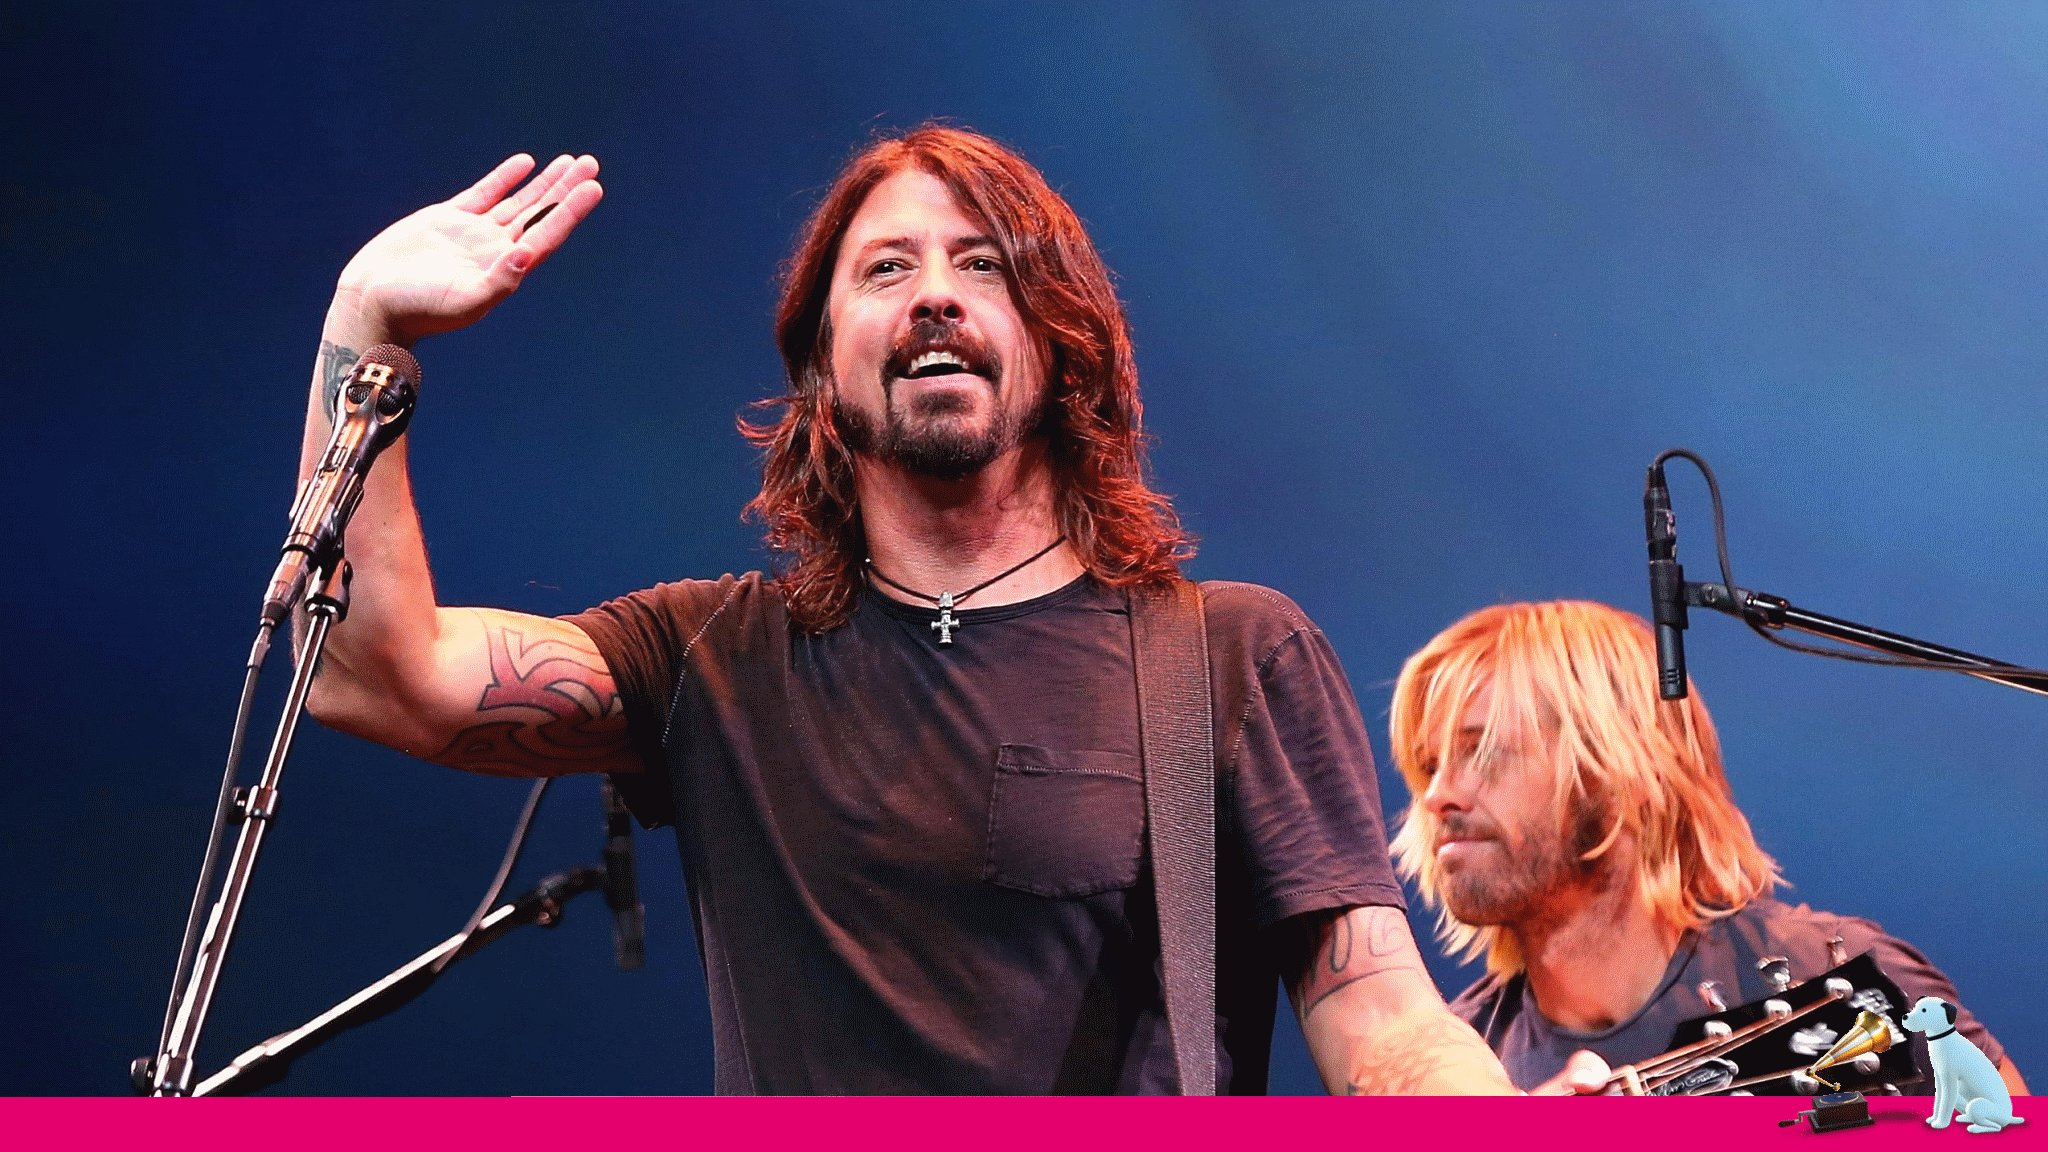 Happy 50th birthday to the one and only Dave Grohl!